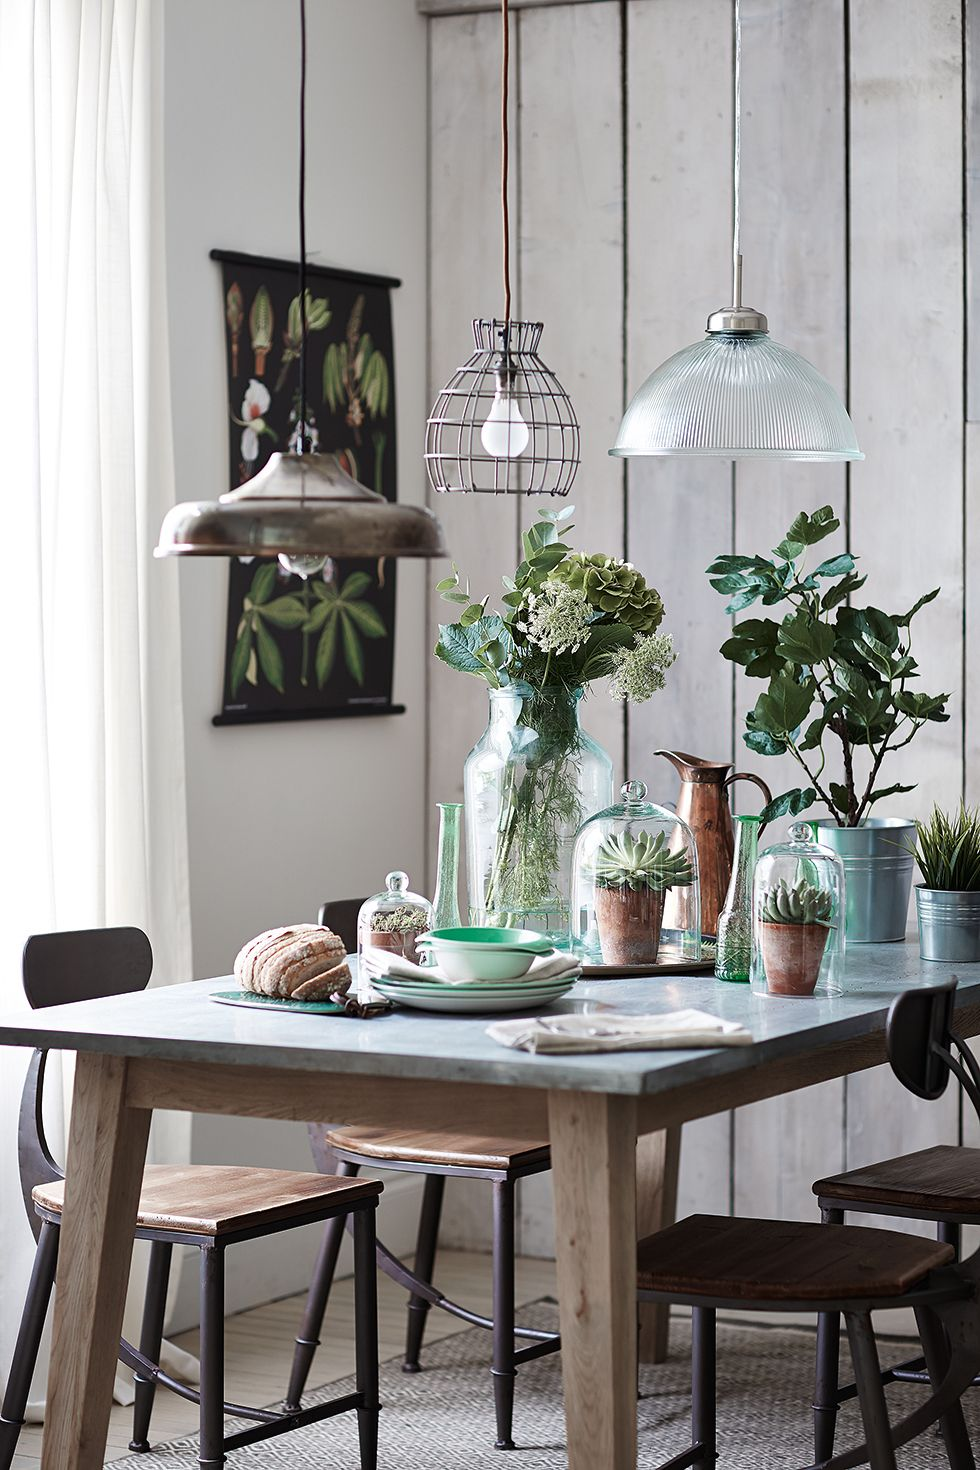 Laboratory Room Design: Accessorise With Laboratory-style Bell Jars And Vintage